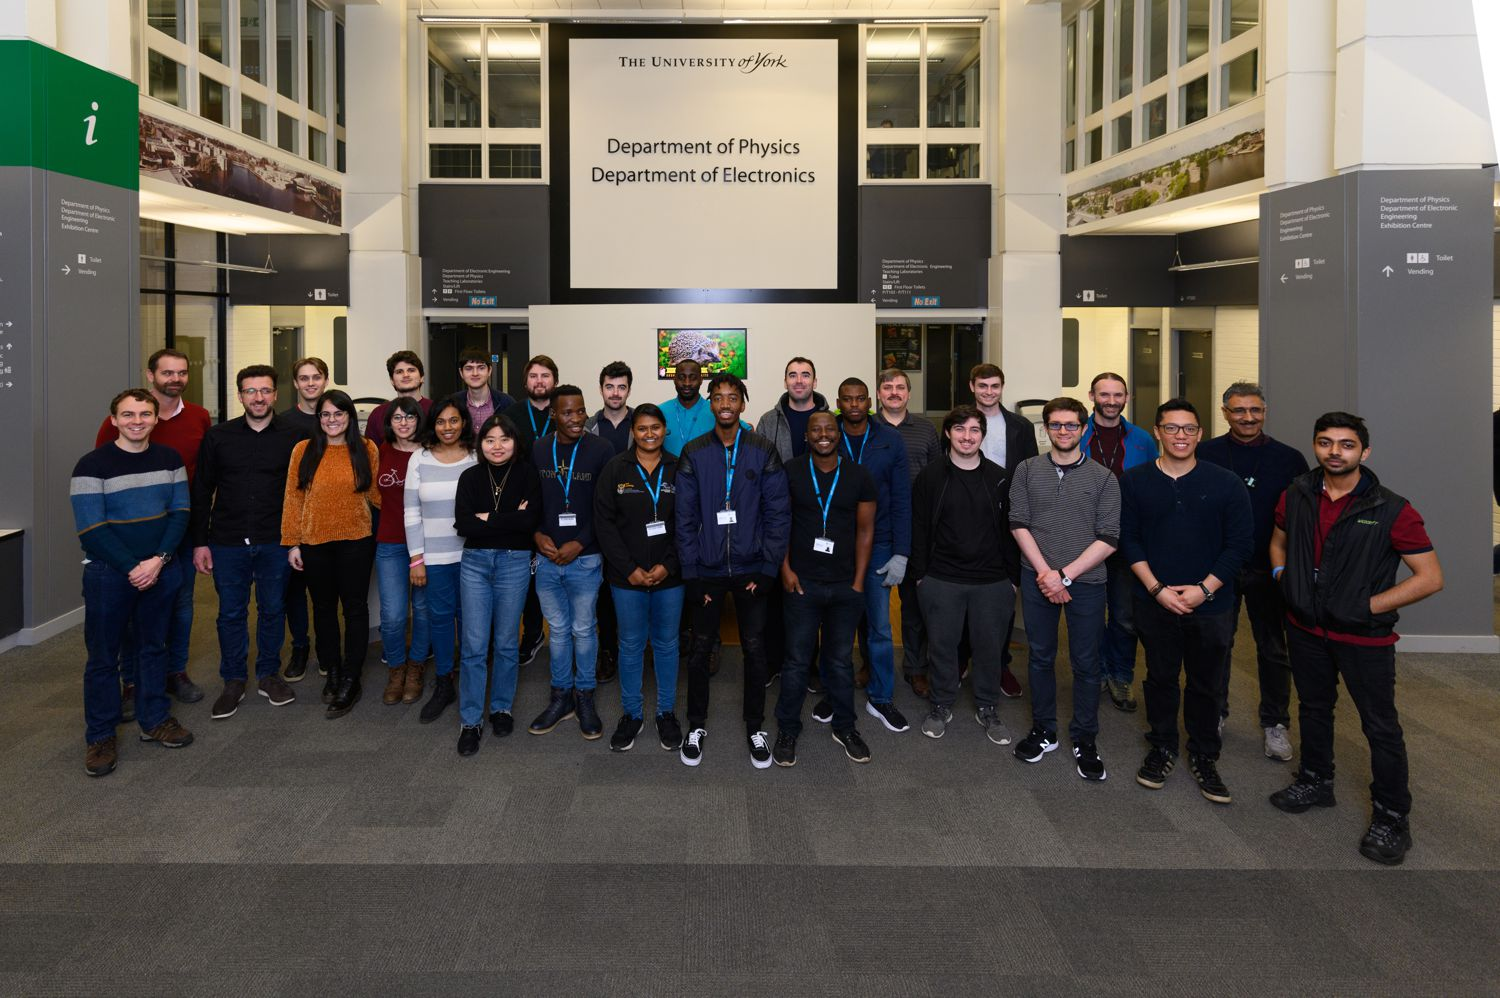 Nuclear Physics Group with students from University of Zululand in York